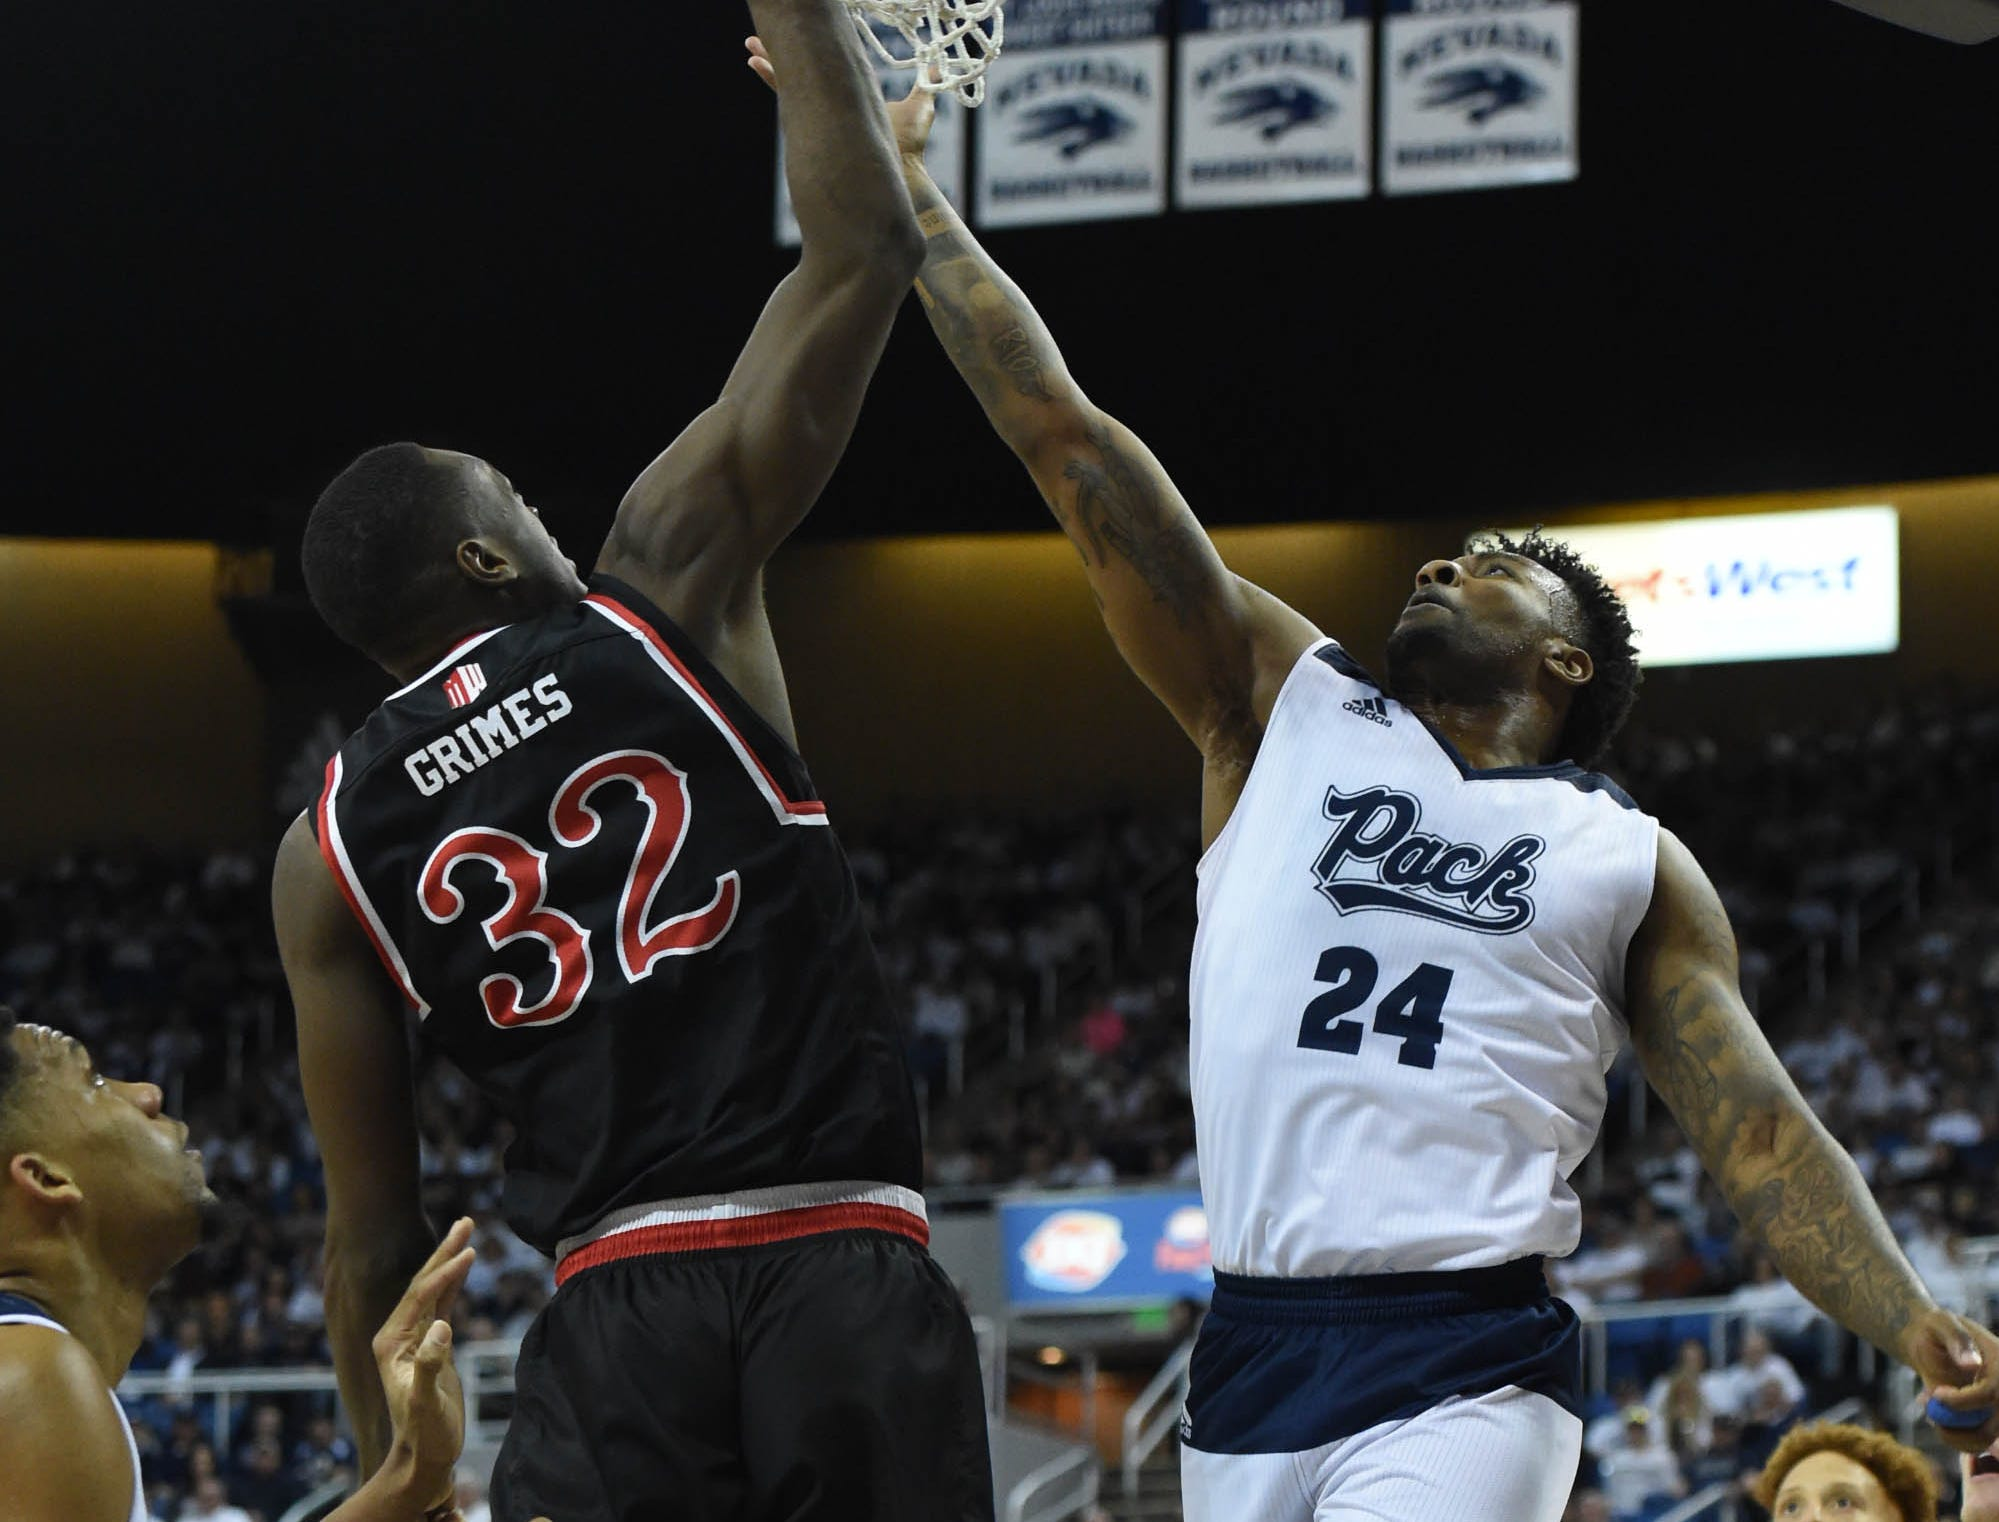 Images from the Fresno State at Nevada game on Saturday Feb. 23, 2019.